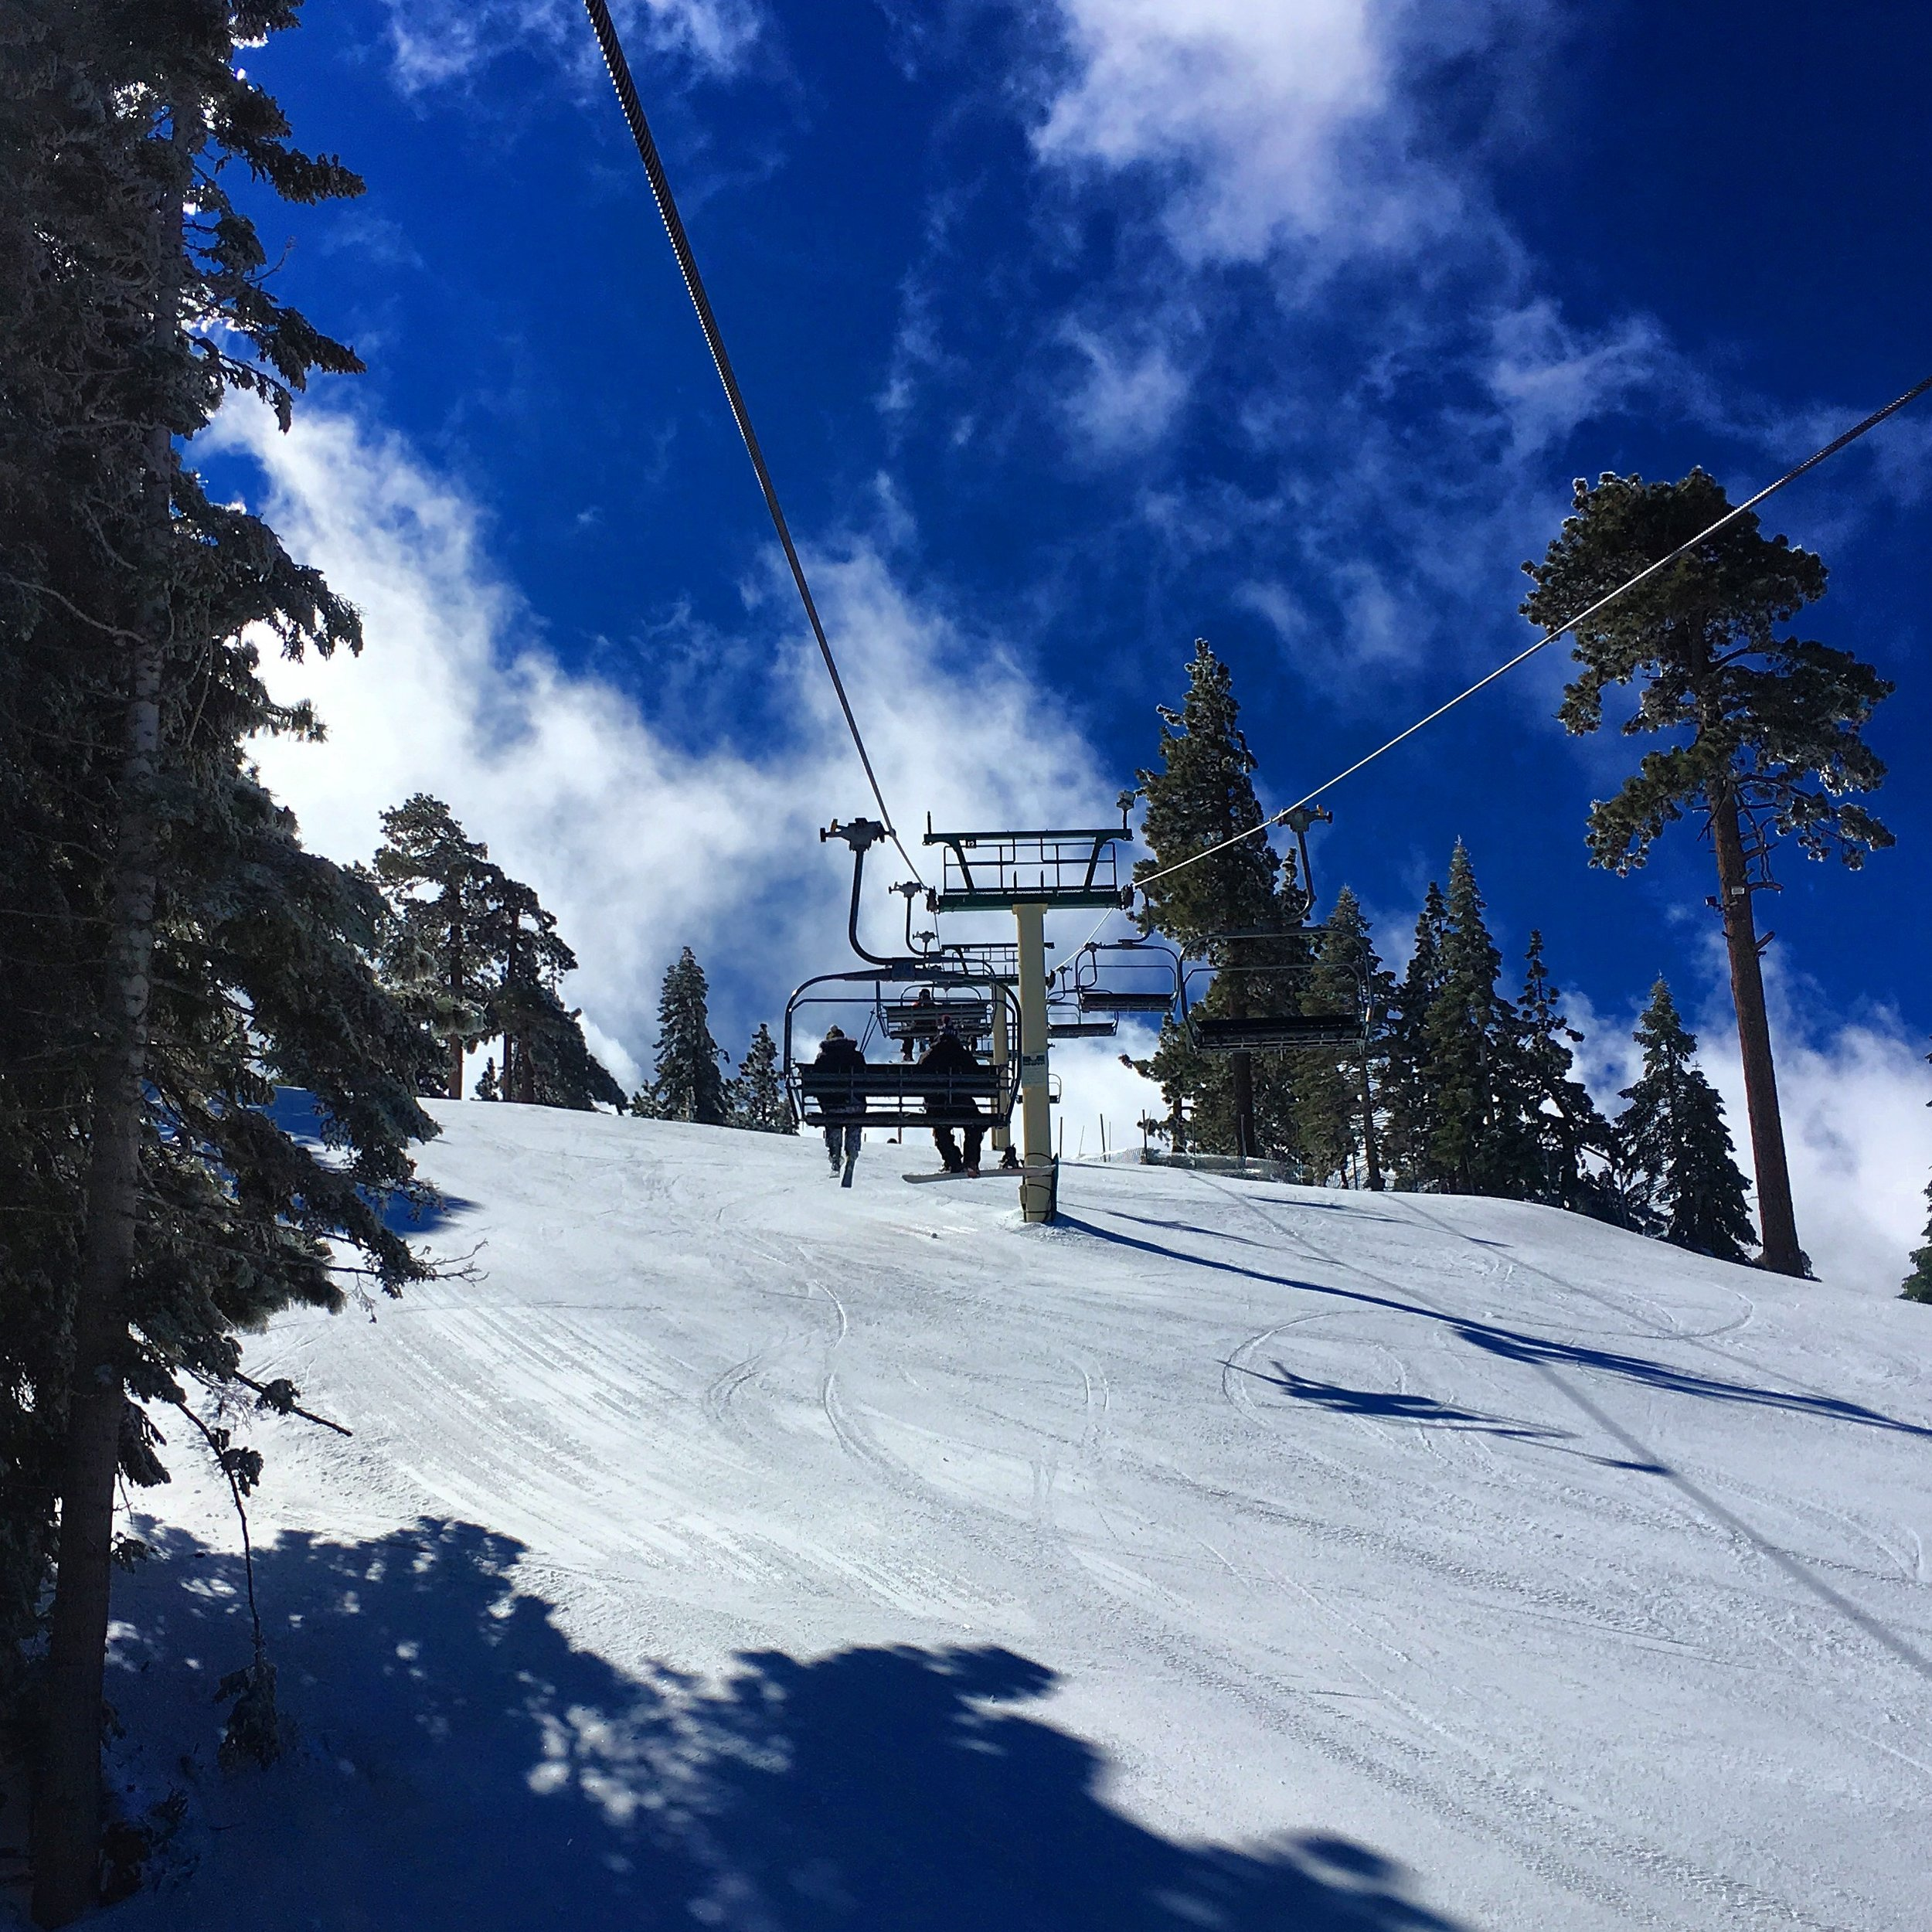 Had a beautiful time up in  BigBear  with some REAL skiers. A little humbling as I am a beginner. Learned a lot about myself up there and we talked about some amazing dreams for some new friends that are very exciting!